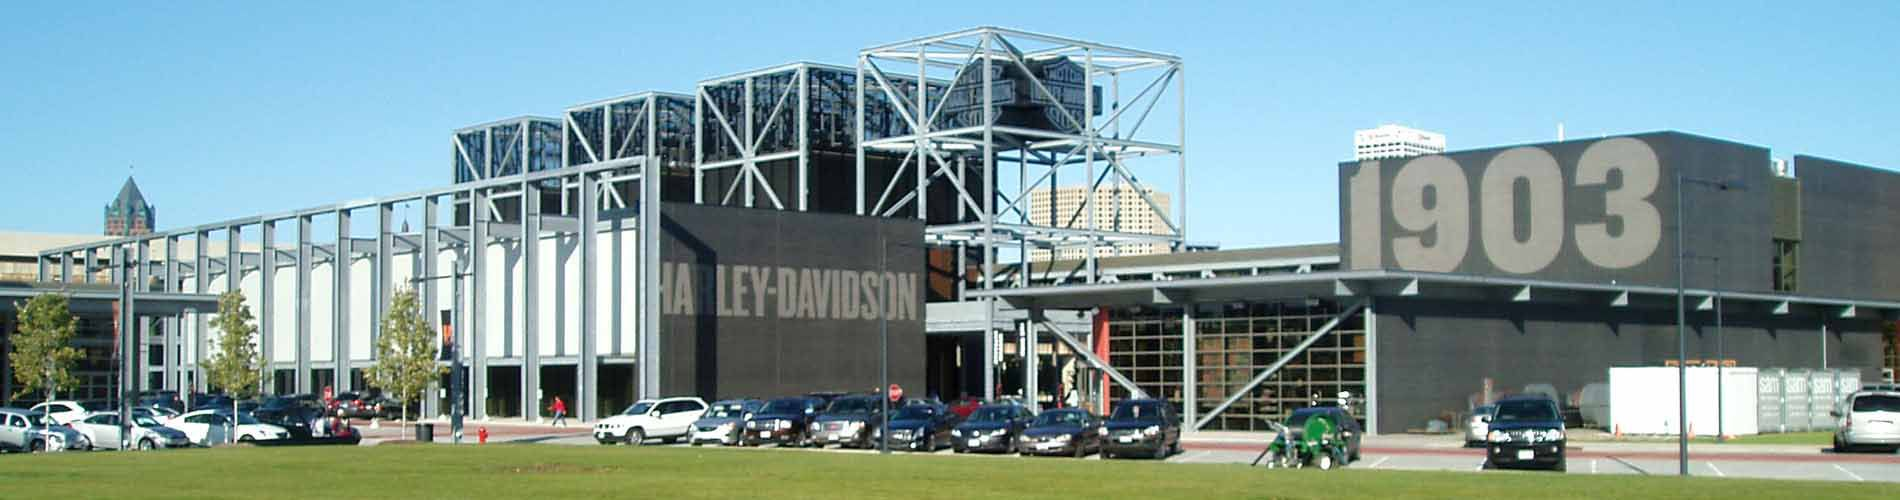 Harley Davidson Museum in Milwaulkee - Case Study | McNICHOLS